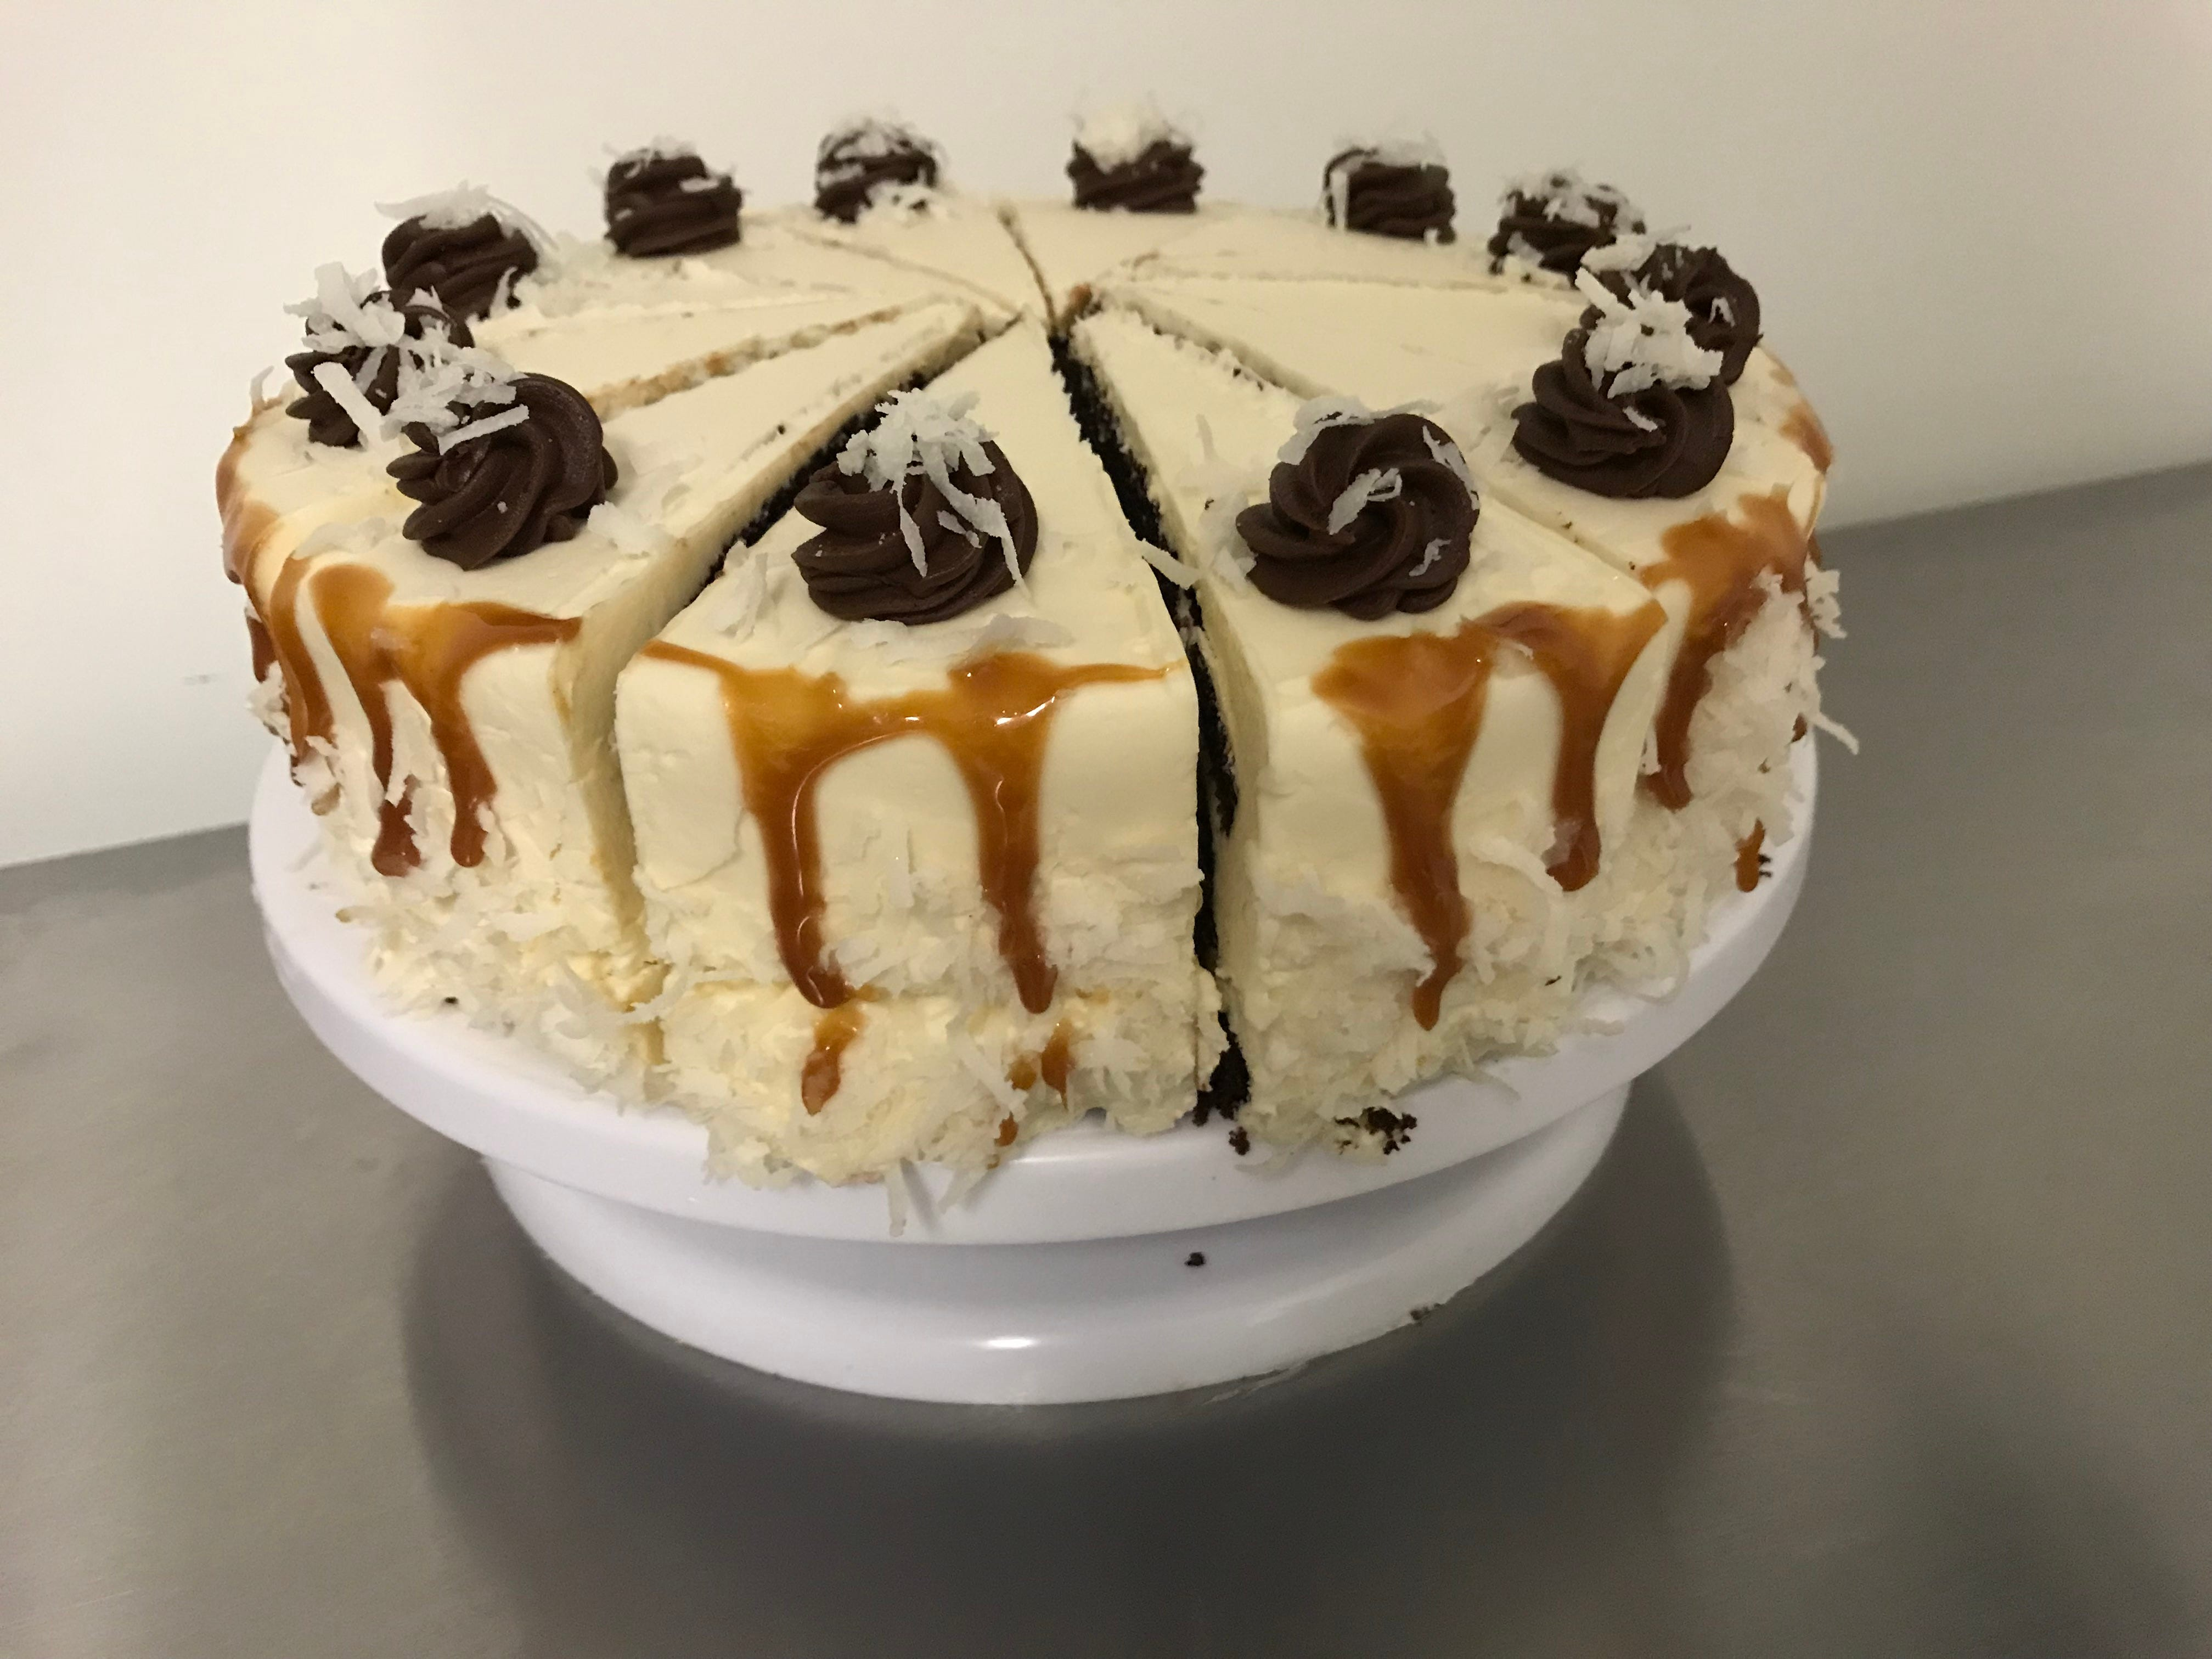 A Samoa cake will be served by the slice at Caramel Bakery and Bar.